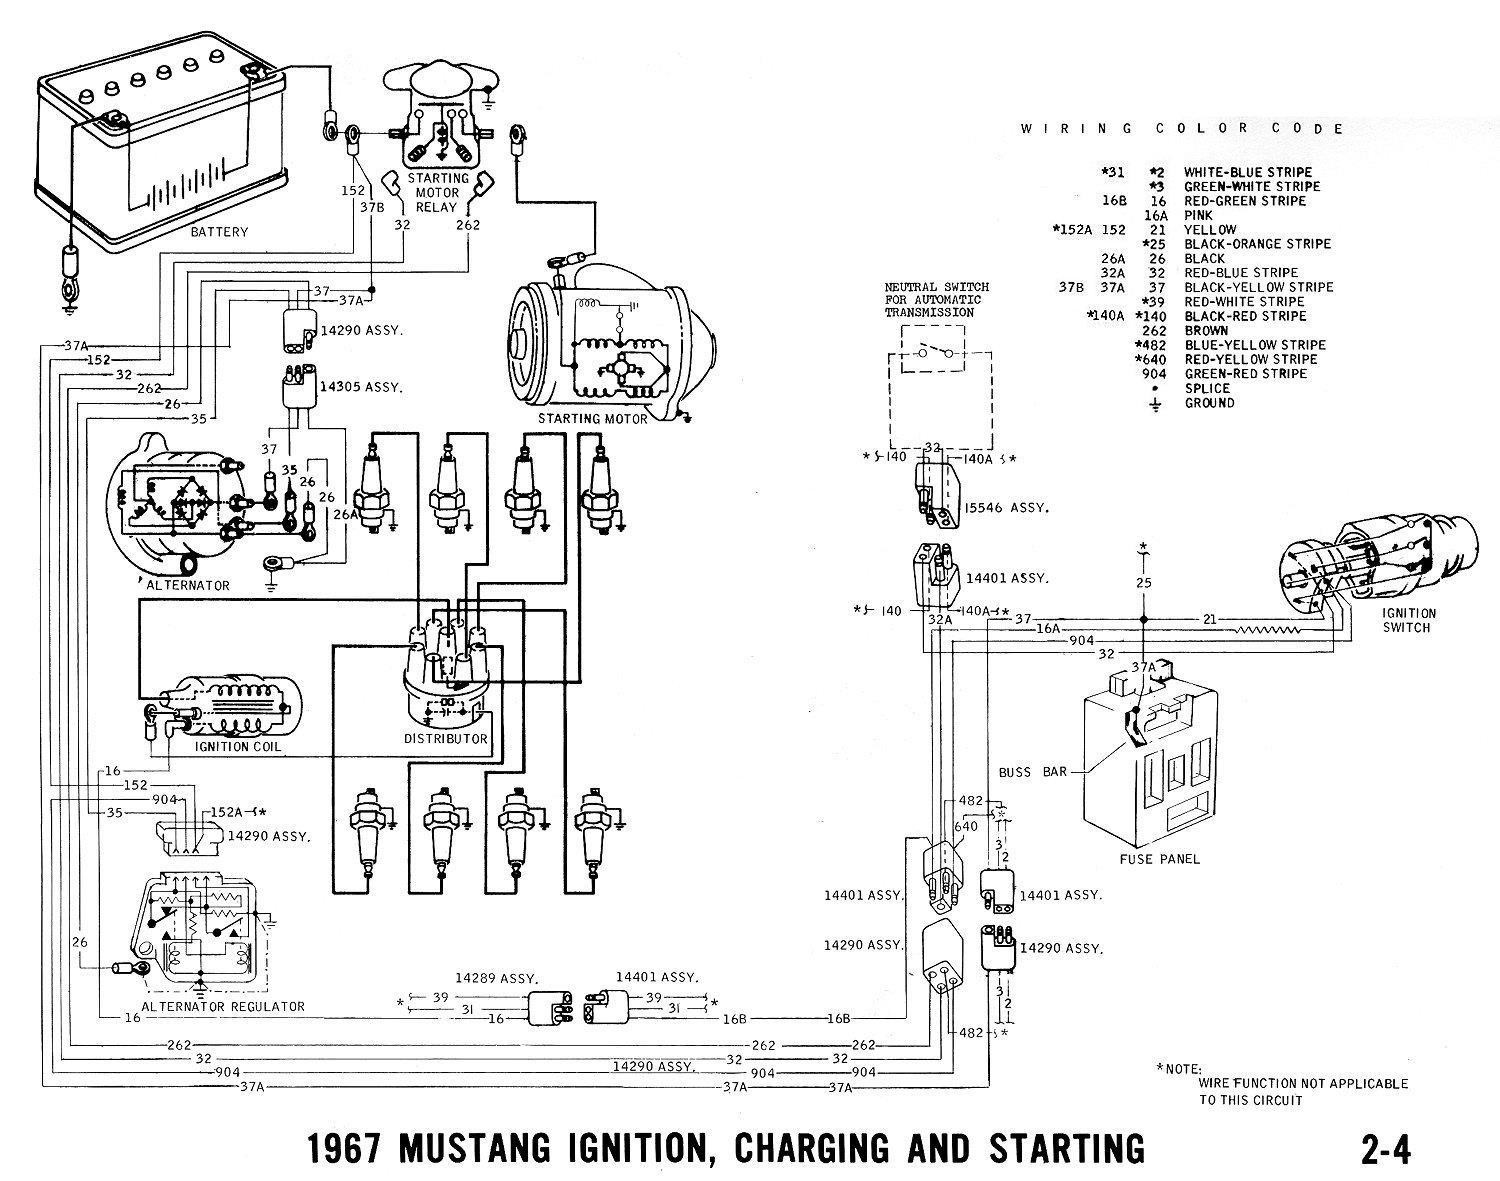 hight resolution of 1973 ford mustang alternator wiring diagram universal wiring diagram 1973 mustang wiring harness